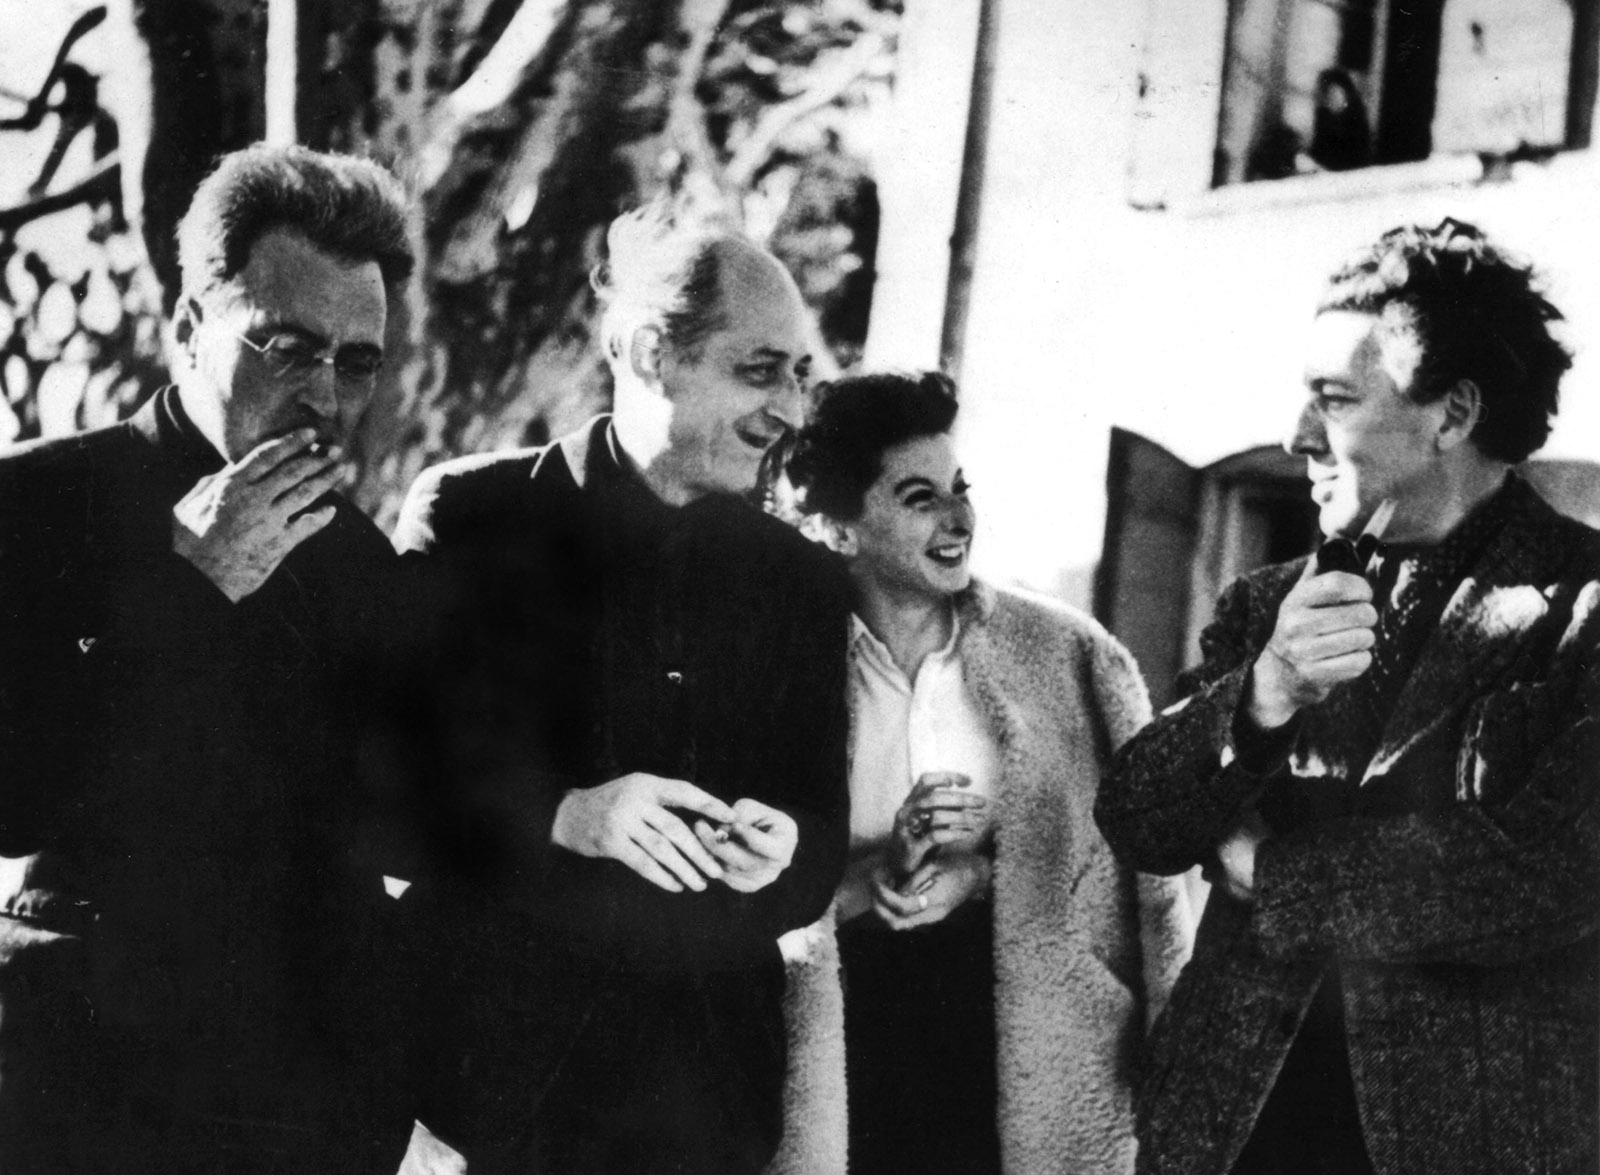 Victor Serge, with Dadaist poet Benjamin Péret and his lover, the artist Remedios Varo, and André Breton, France, 1939